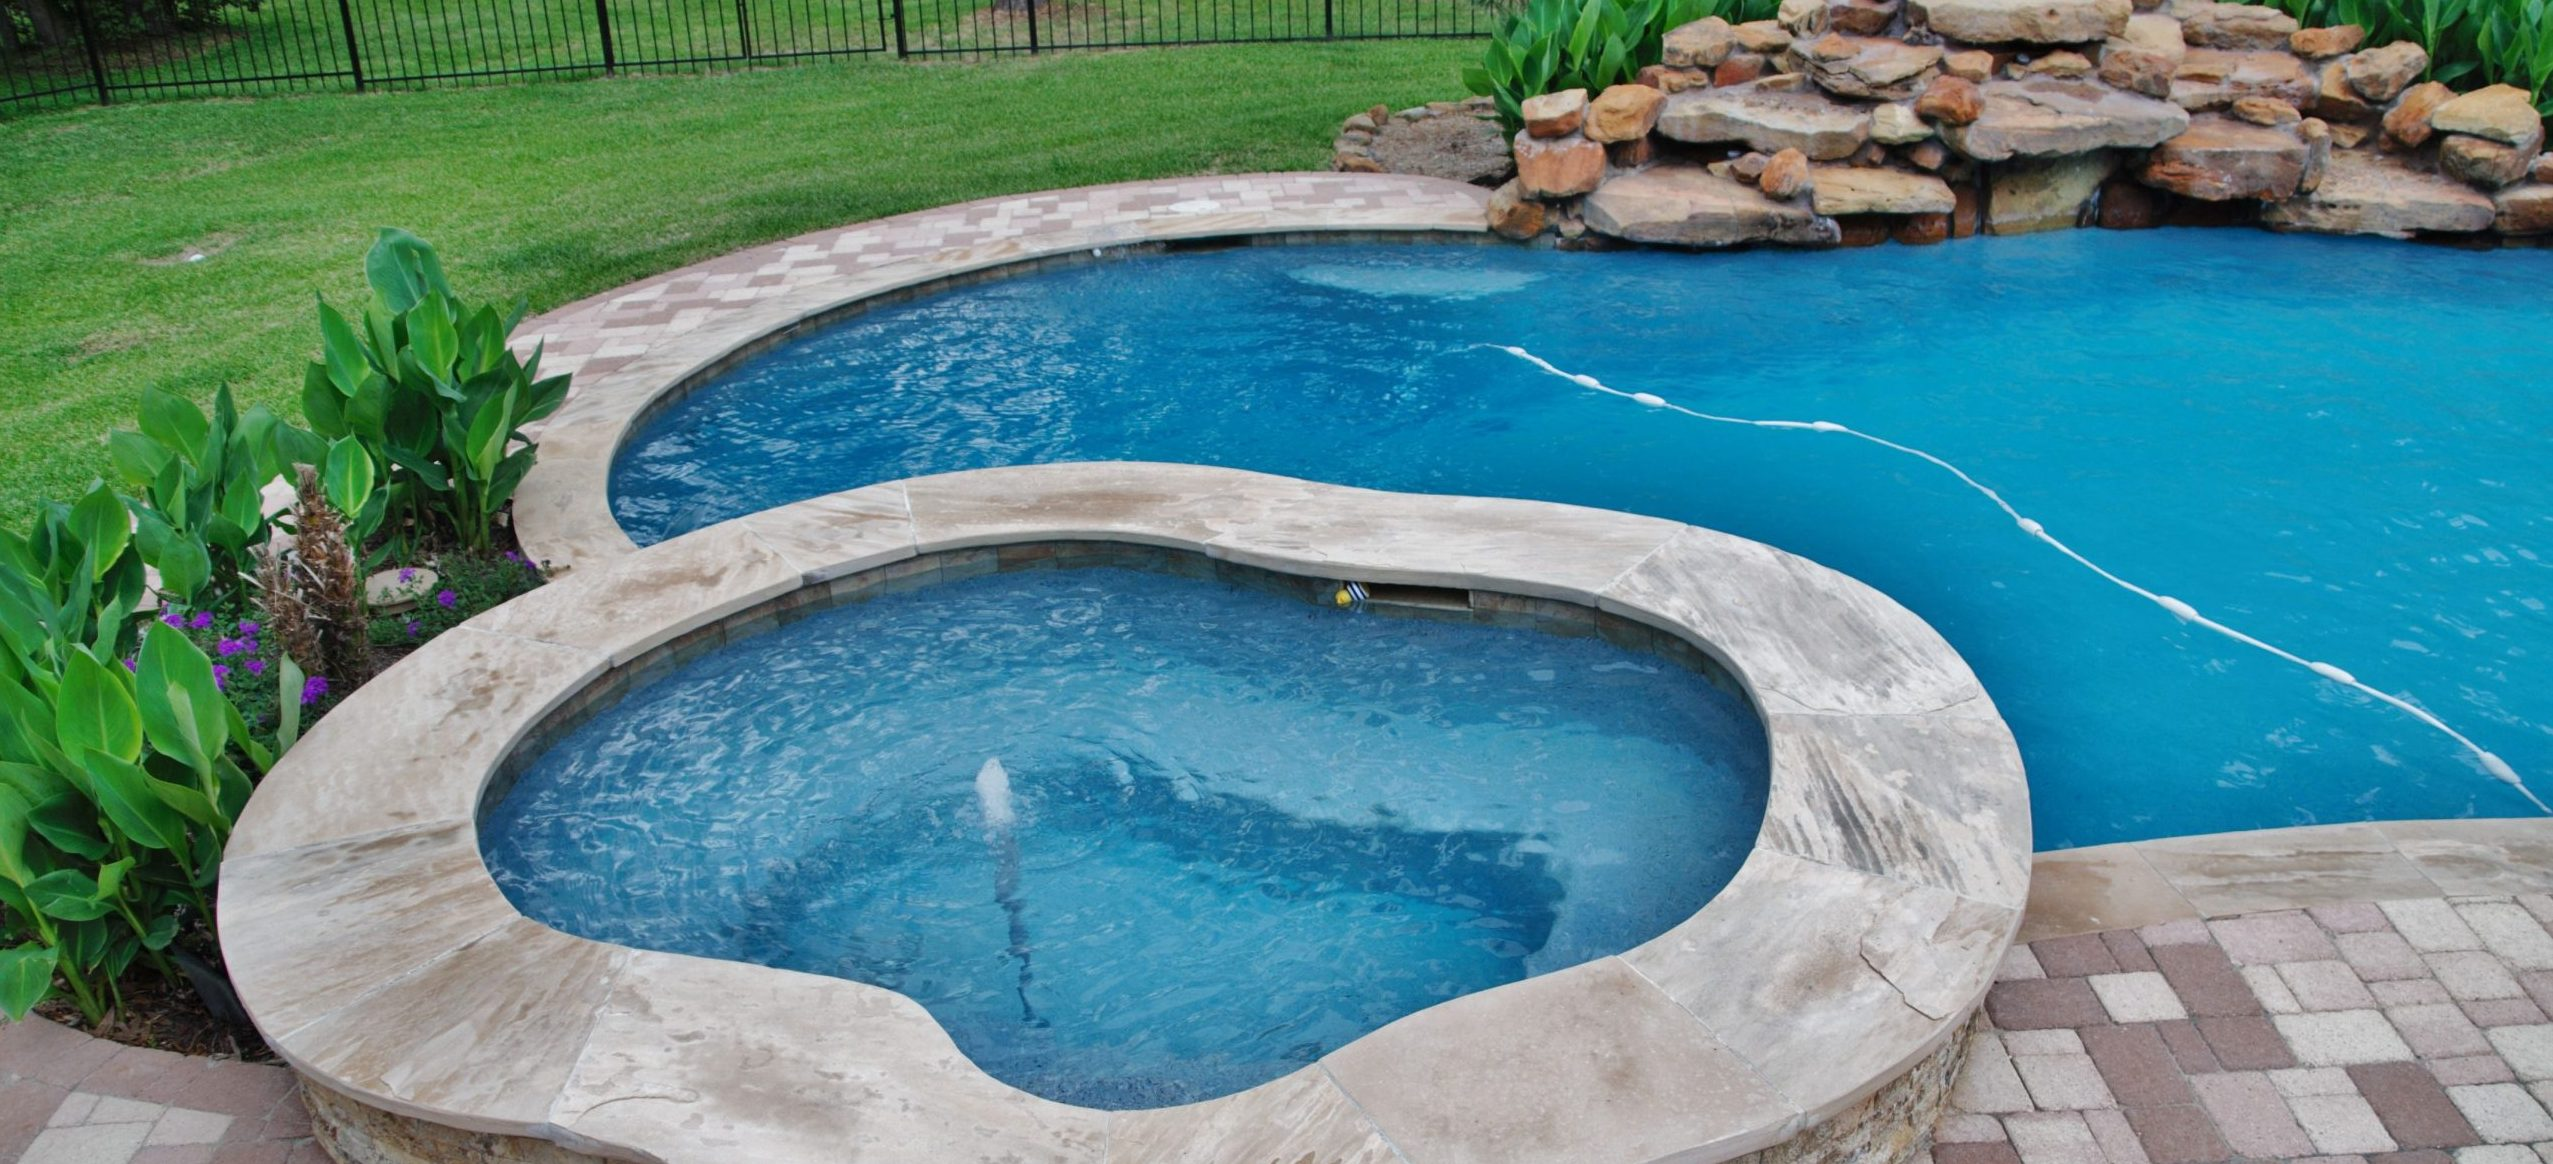 Why Fall is the Best Time to Schedule a Pool Renovation